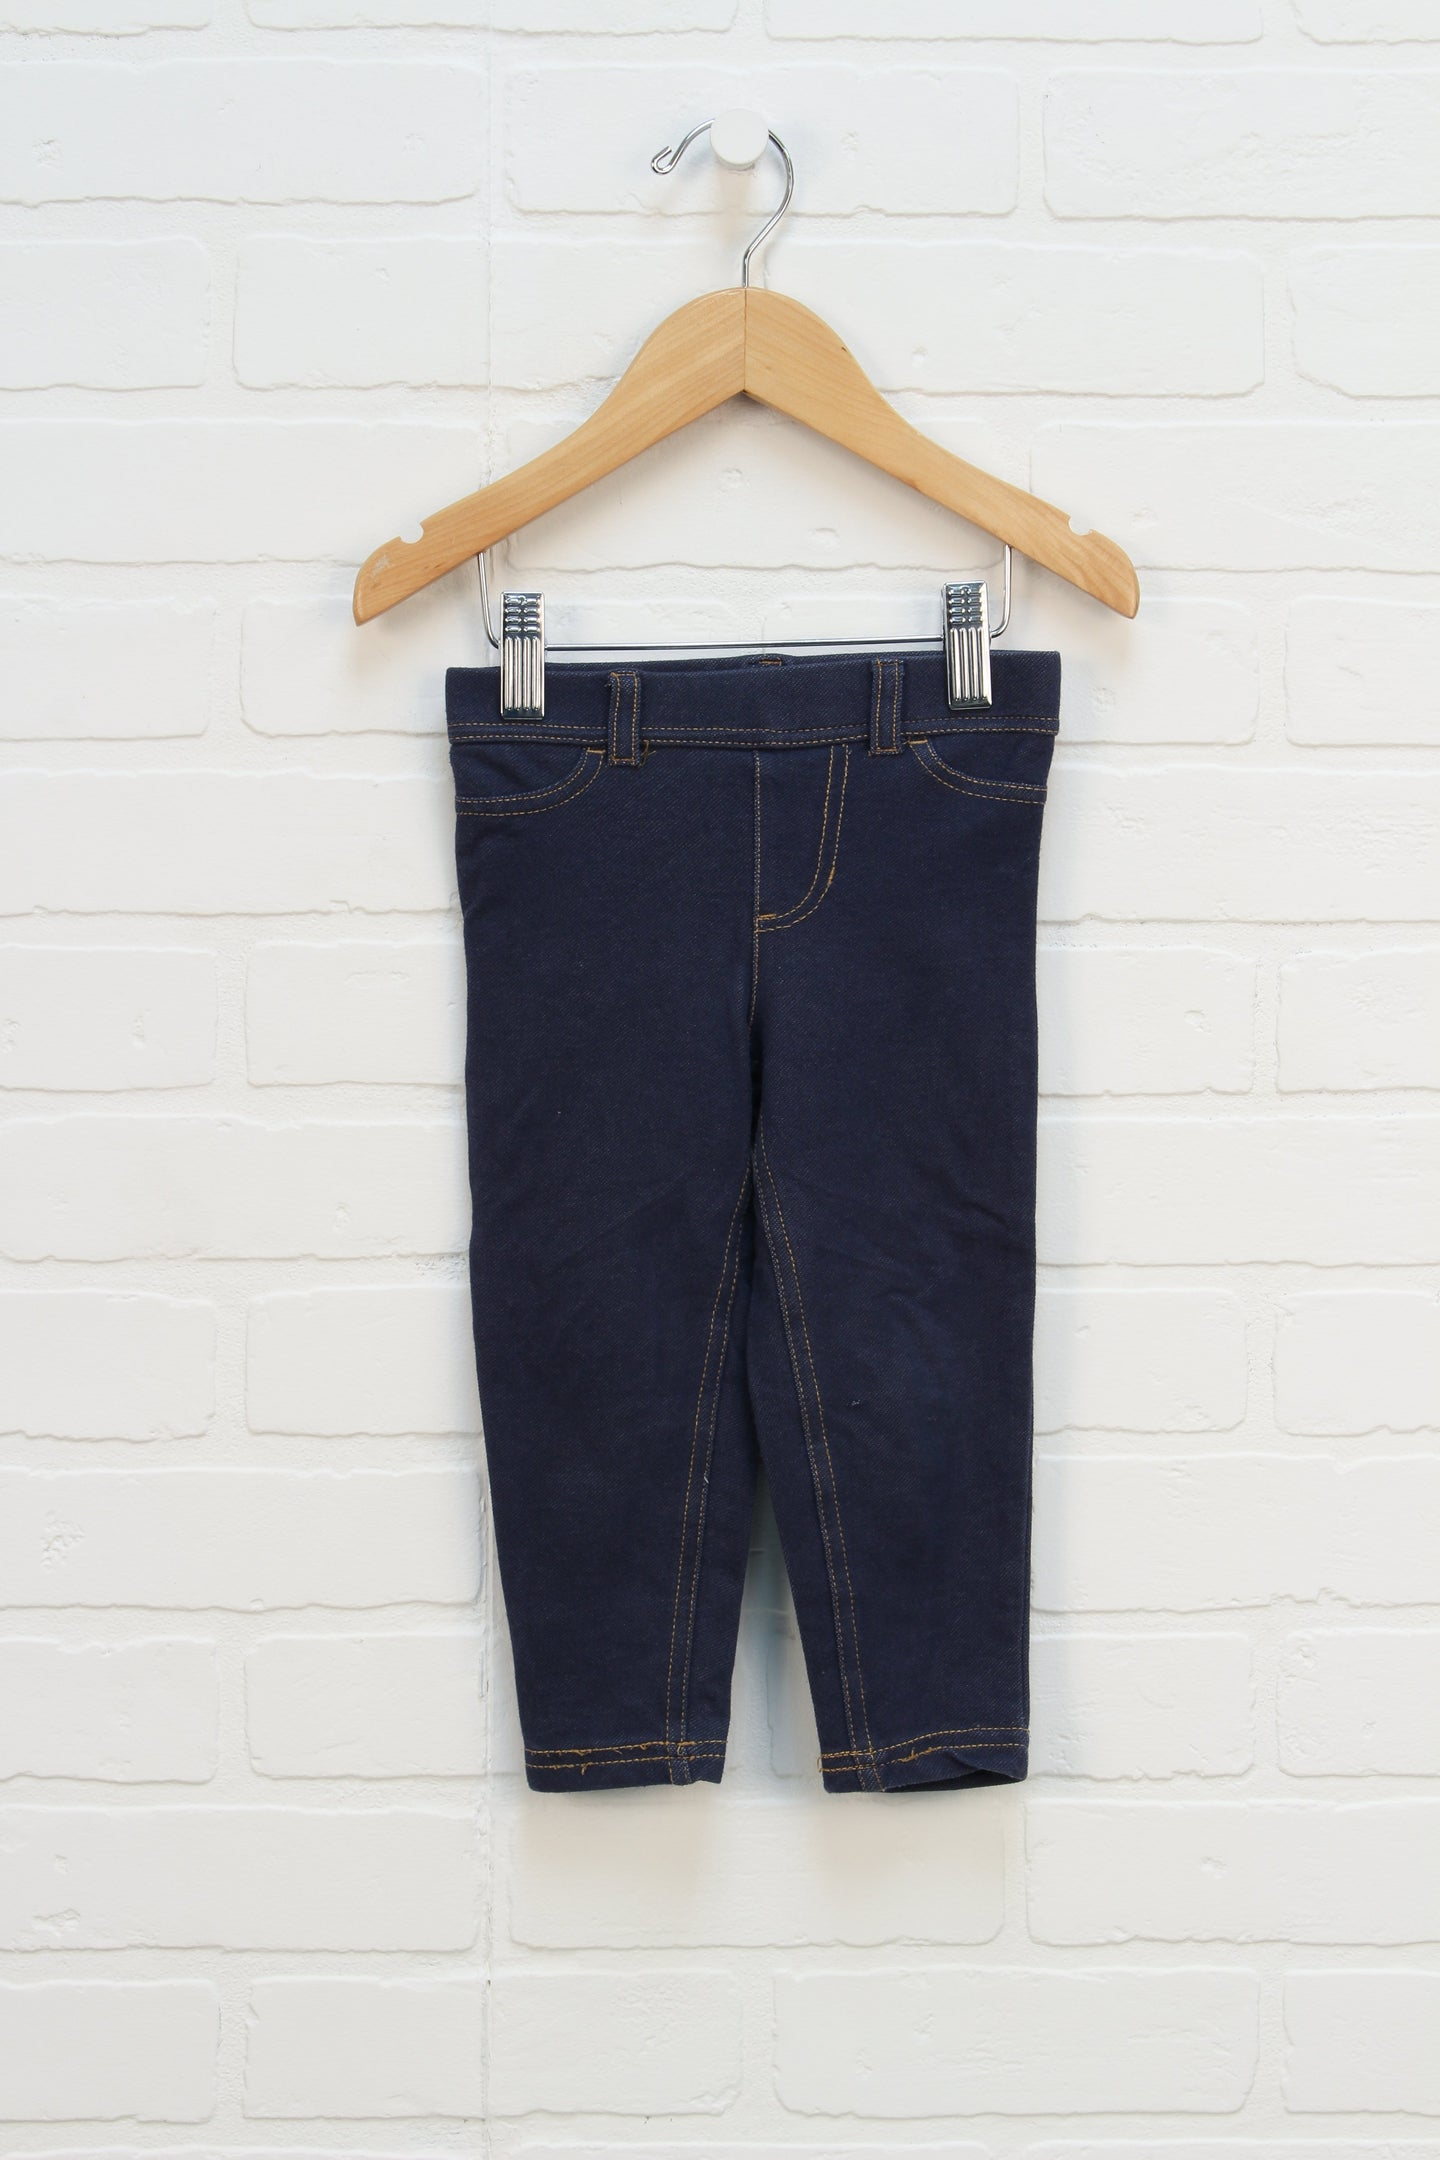 Blue Jeggings (Size 24M)